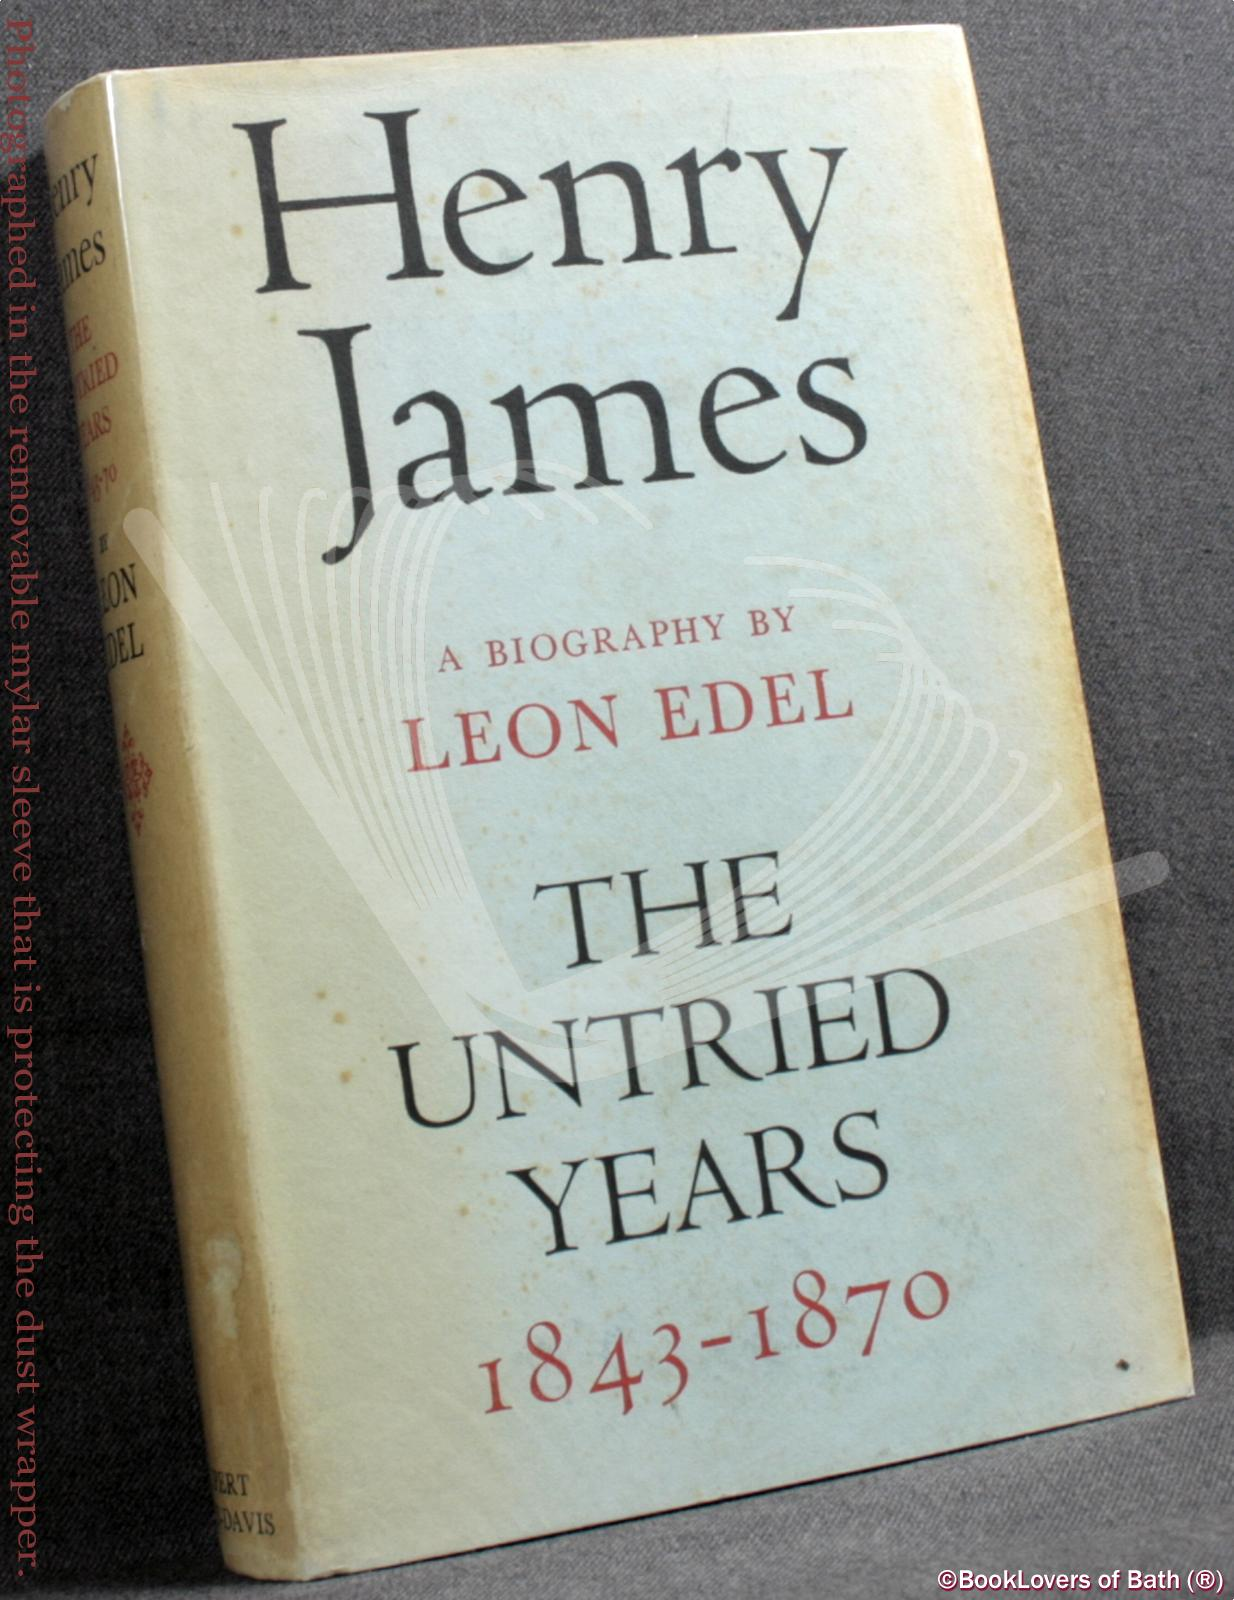 Henry James: The Untried Years 1843-1870 - Leon Edel